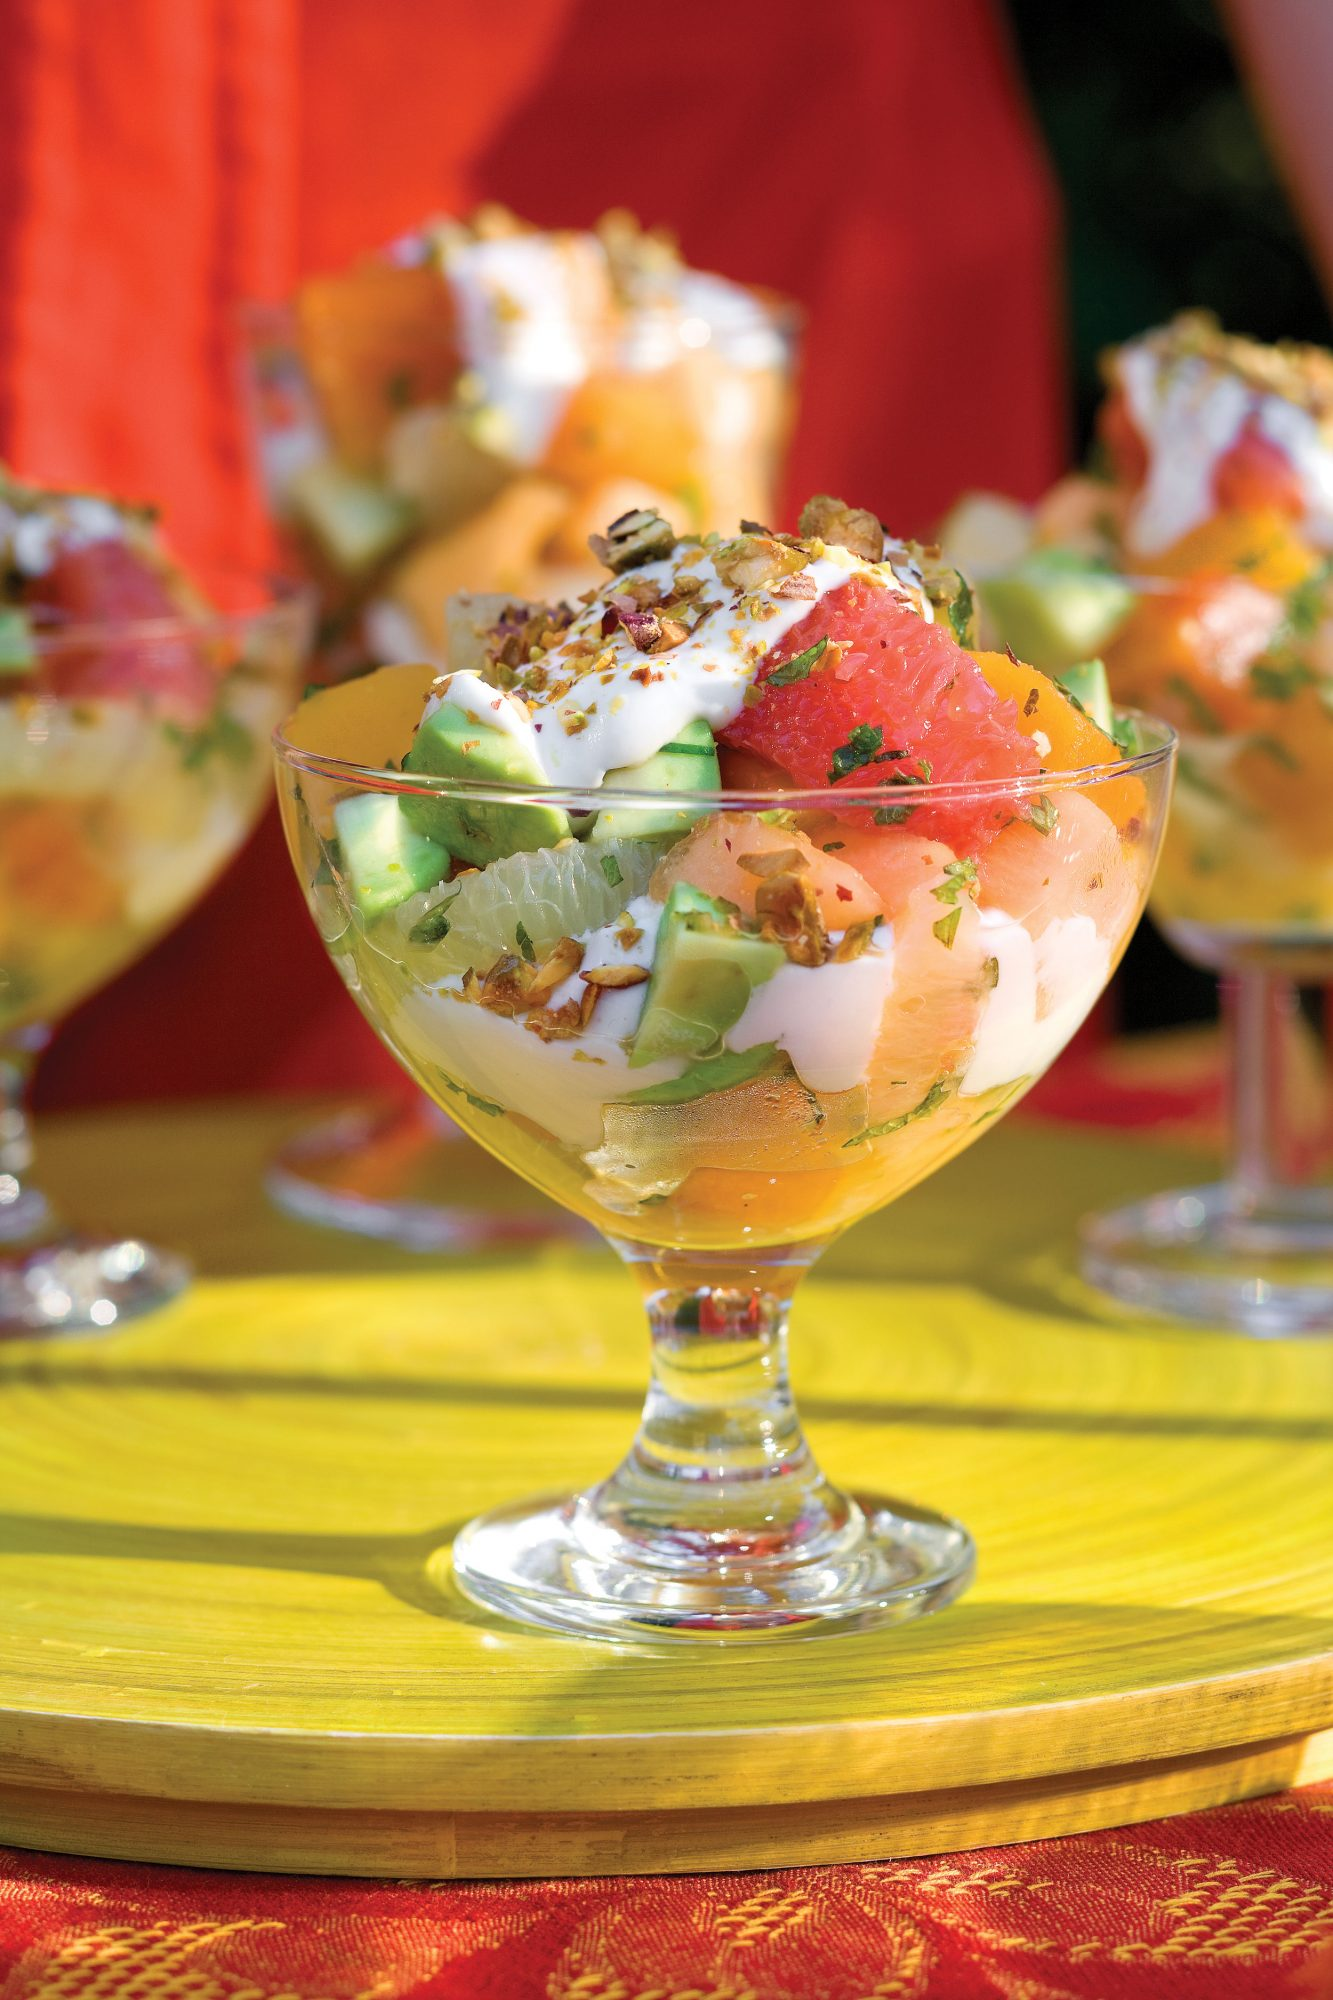 Wedding Shower Recipe Ideas: Avocado Fruit Salad